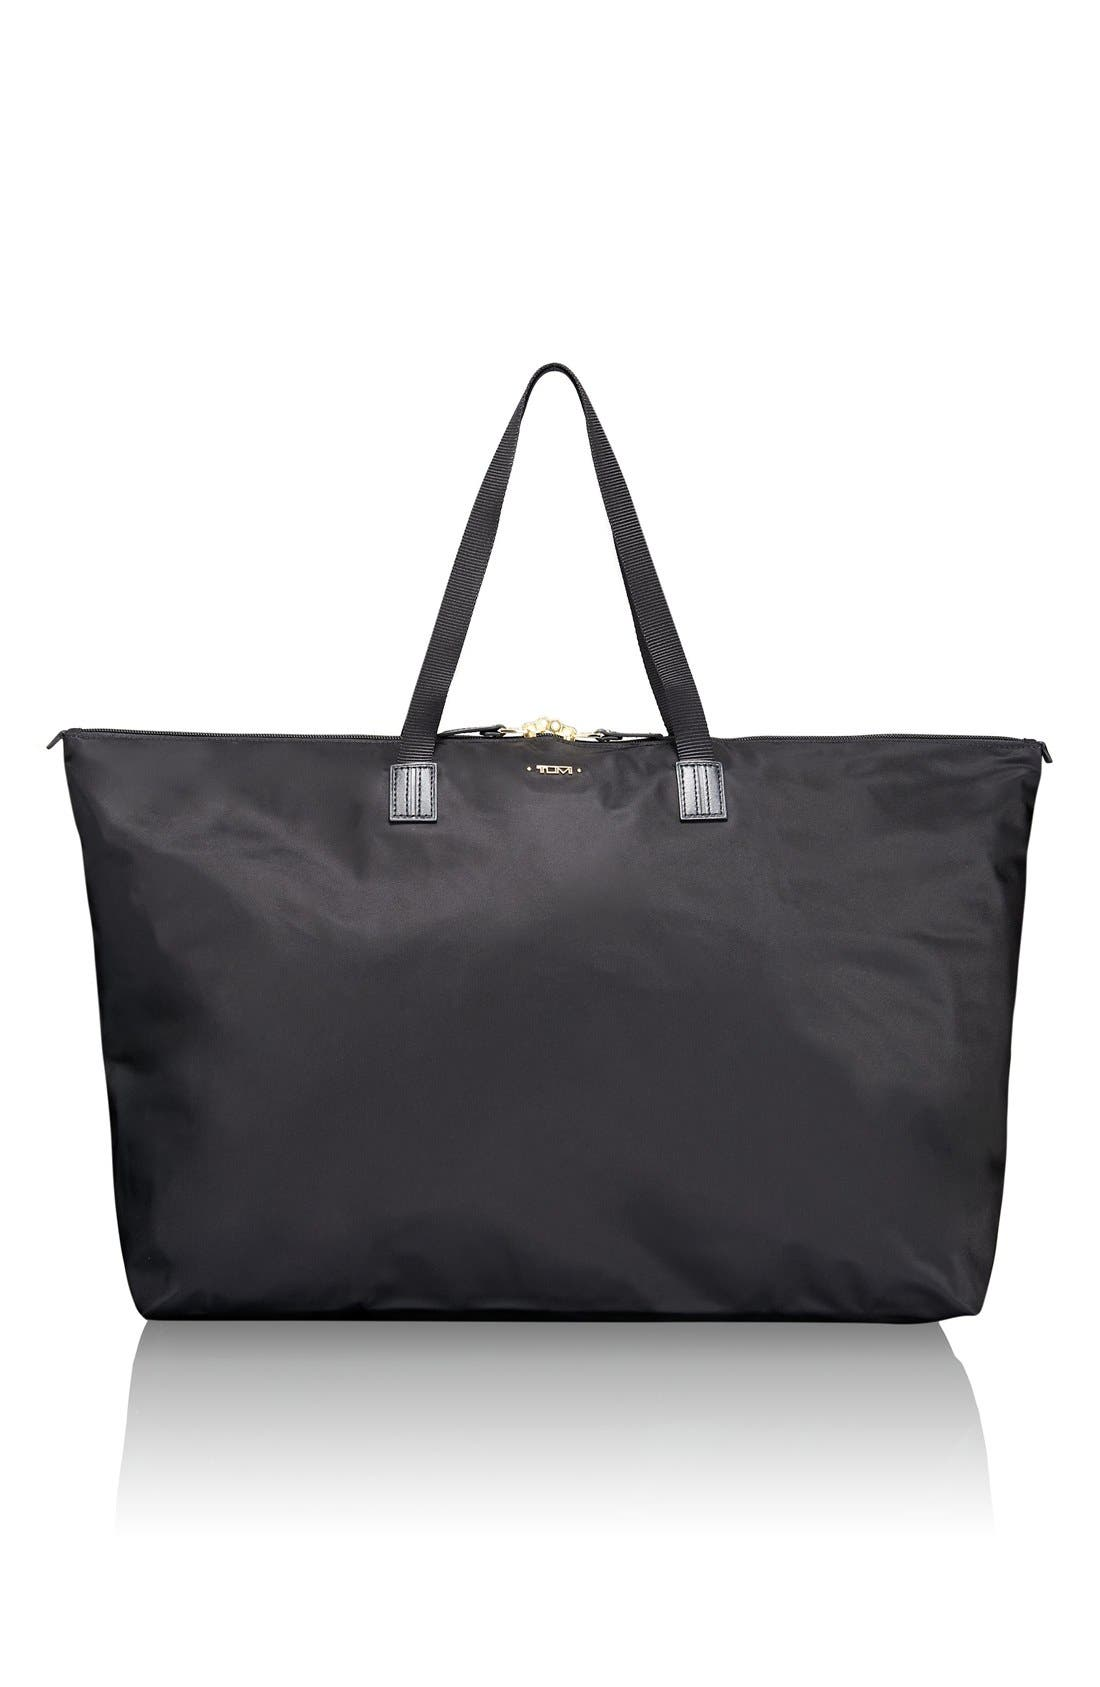 Just in Case Nylon Travel Tote,                         Main,                         color, Black